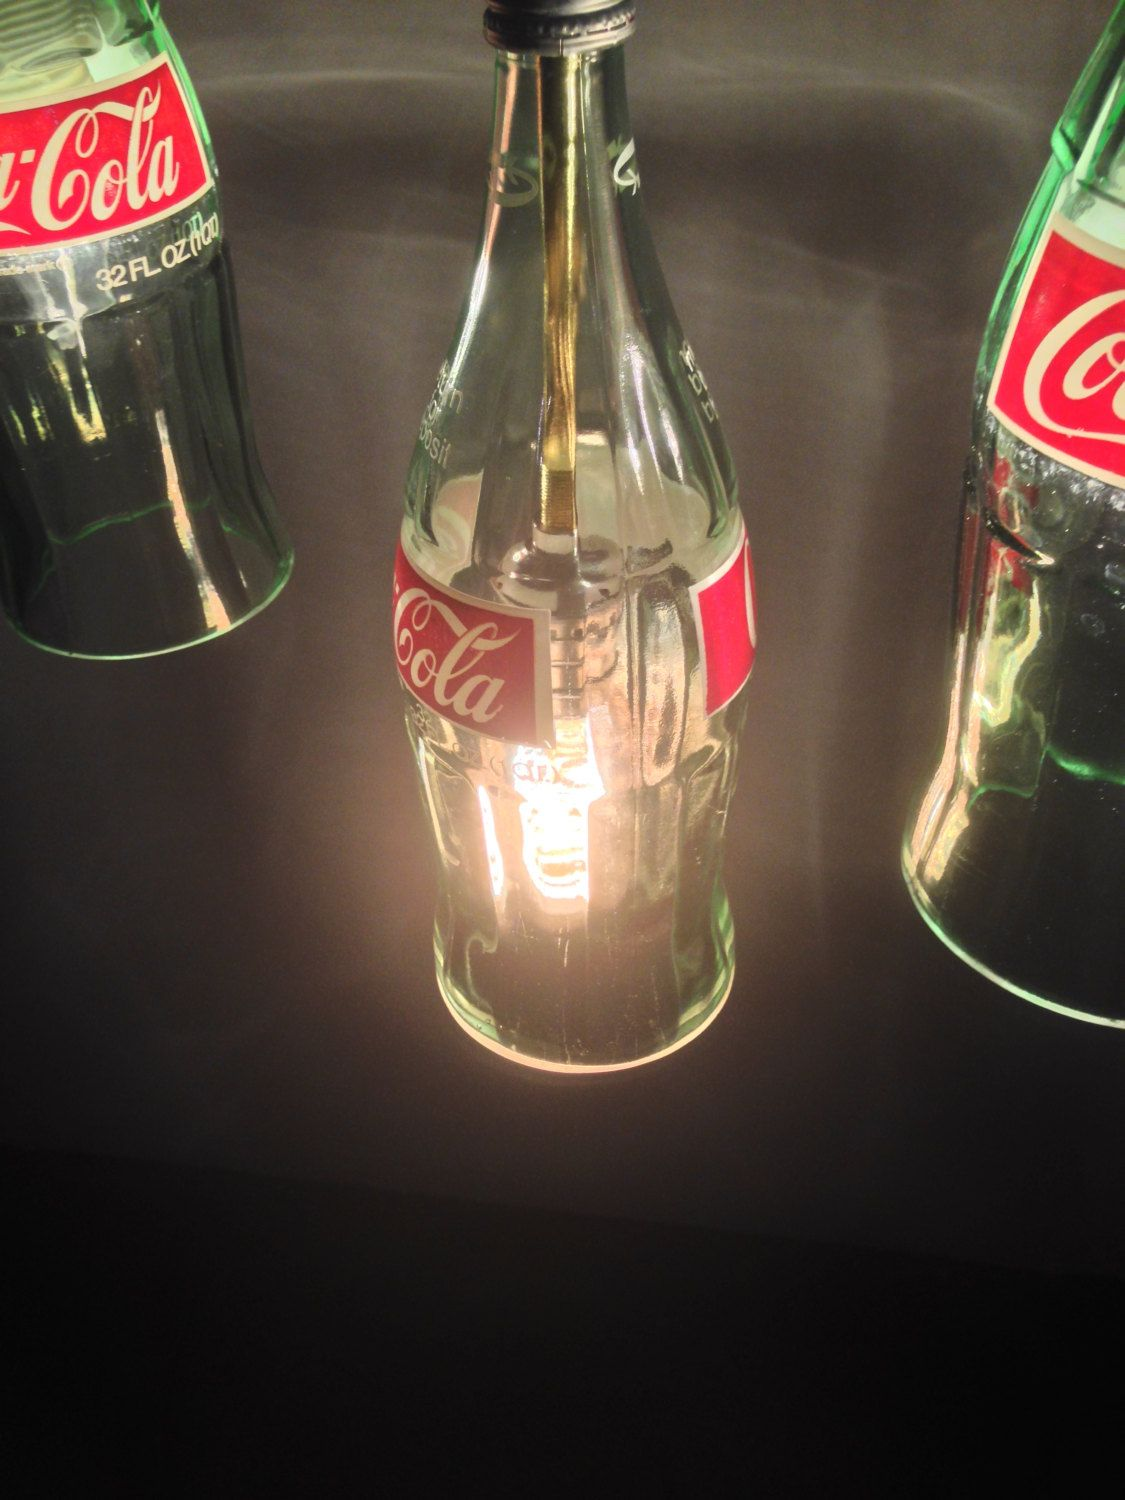 Coca cola bottle chandelier with crate by 869design on etsy https coca cola bottle chandelier with crate by 869design on etsy https arubaitofo Images